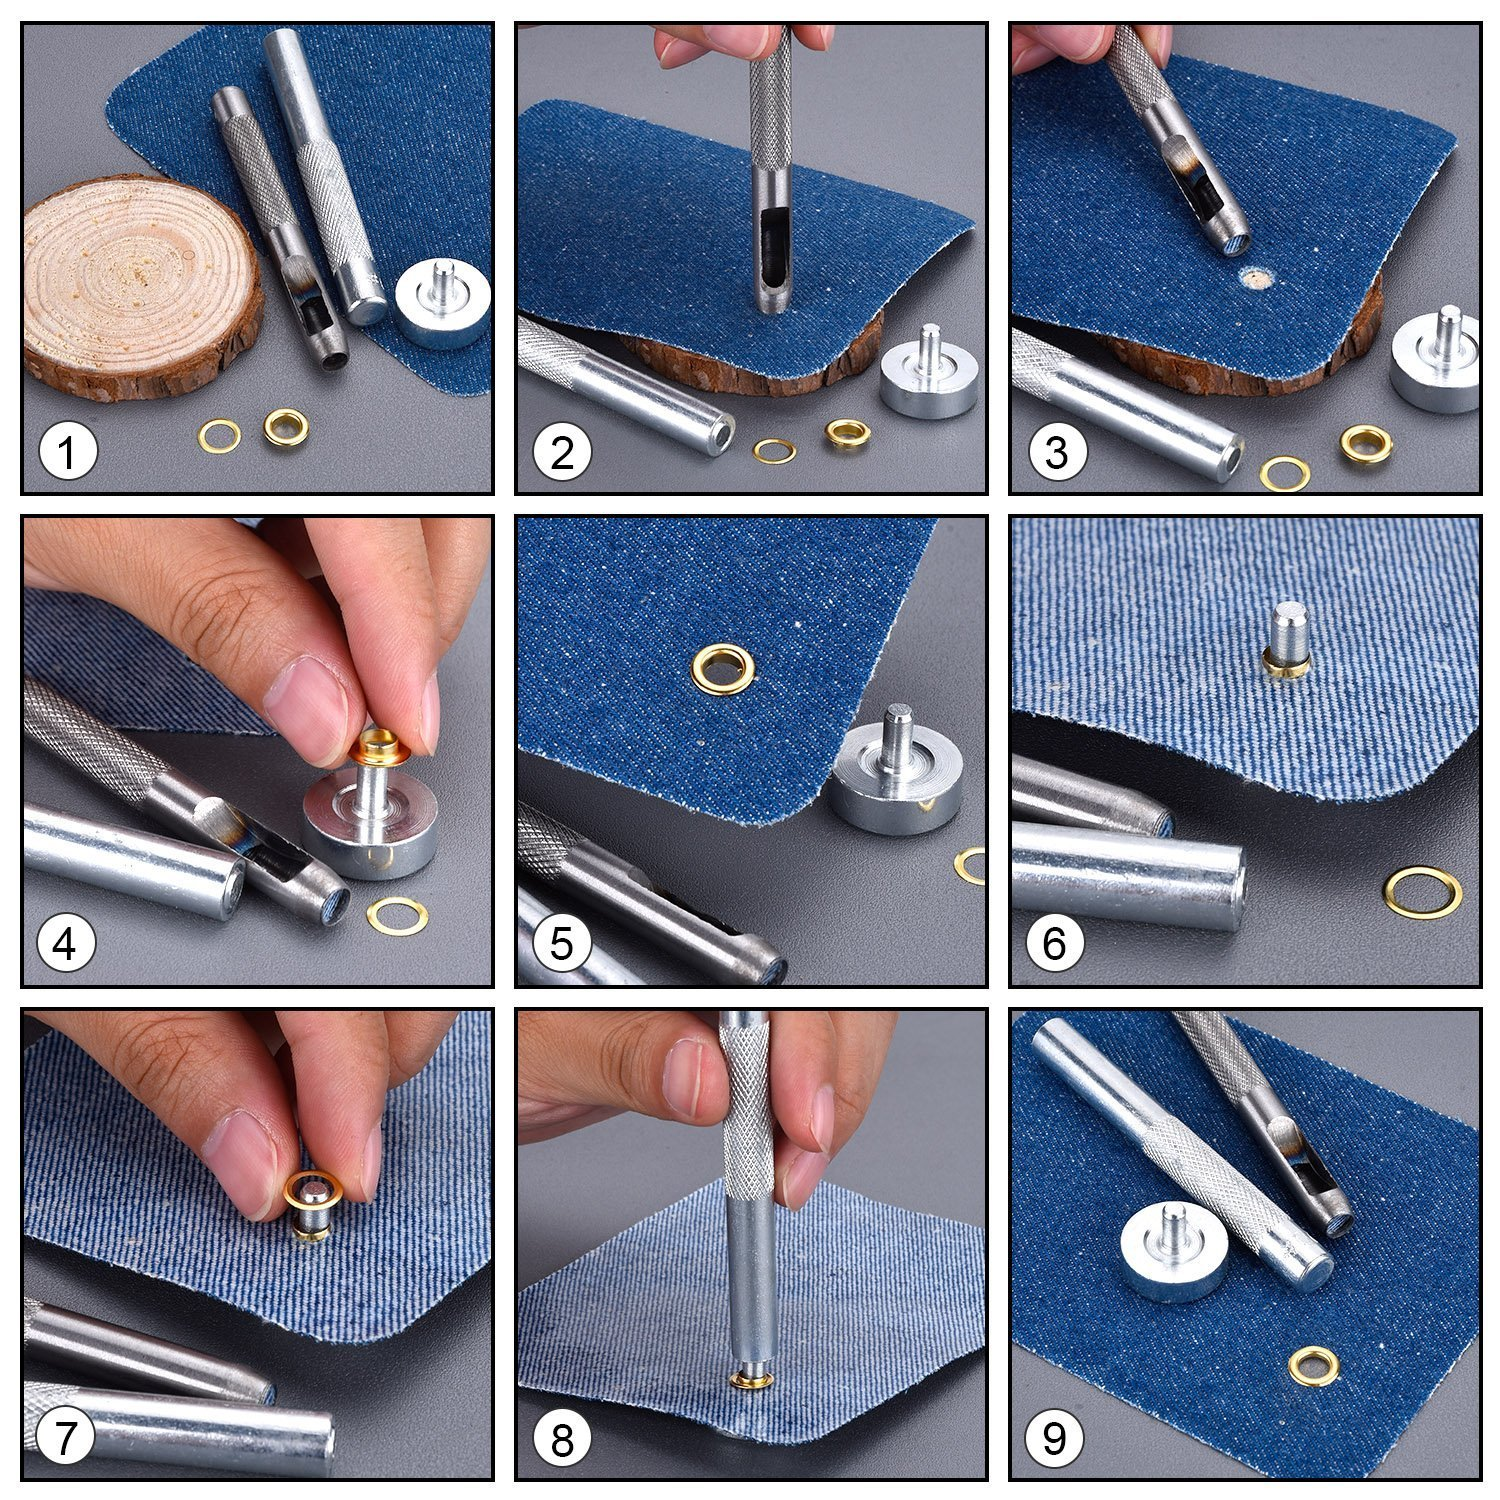 and Hollow Hole Punch for Leathercrafts 12mm Eyelets Grommets Setting Fixing Punch Tool Kit Only Jeans Base Vinyl Banners Punch Set of 3 Scrapbooking and Arts /& Craft Projects